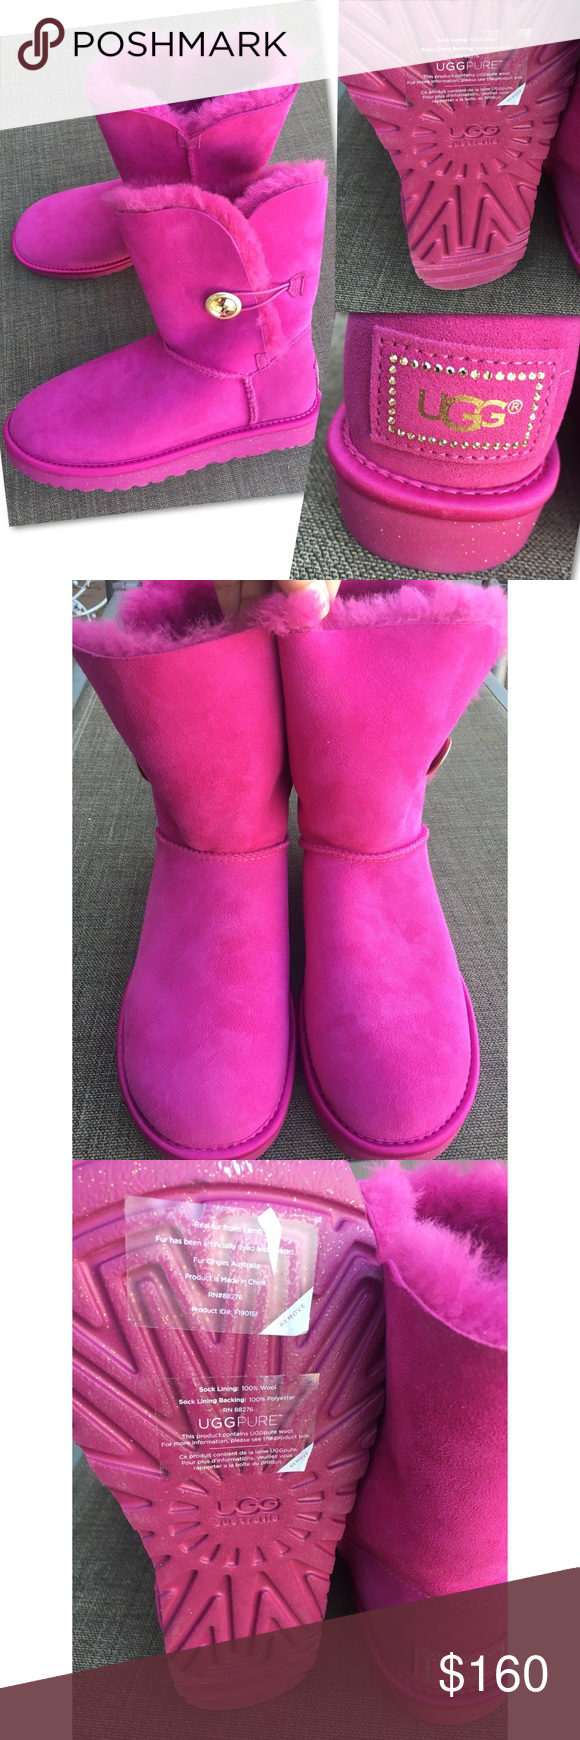 997774d8aa8 RARE NEW UGG BAILEY BUTTON BLING HOT PINK BOOTS 9 NEW WITHOUT BOX ...